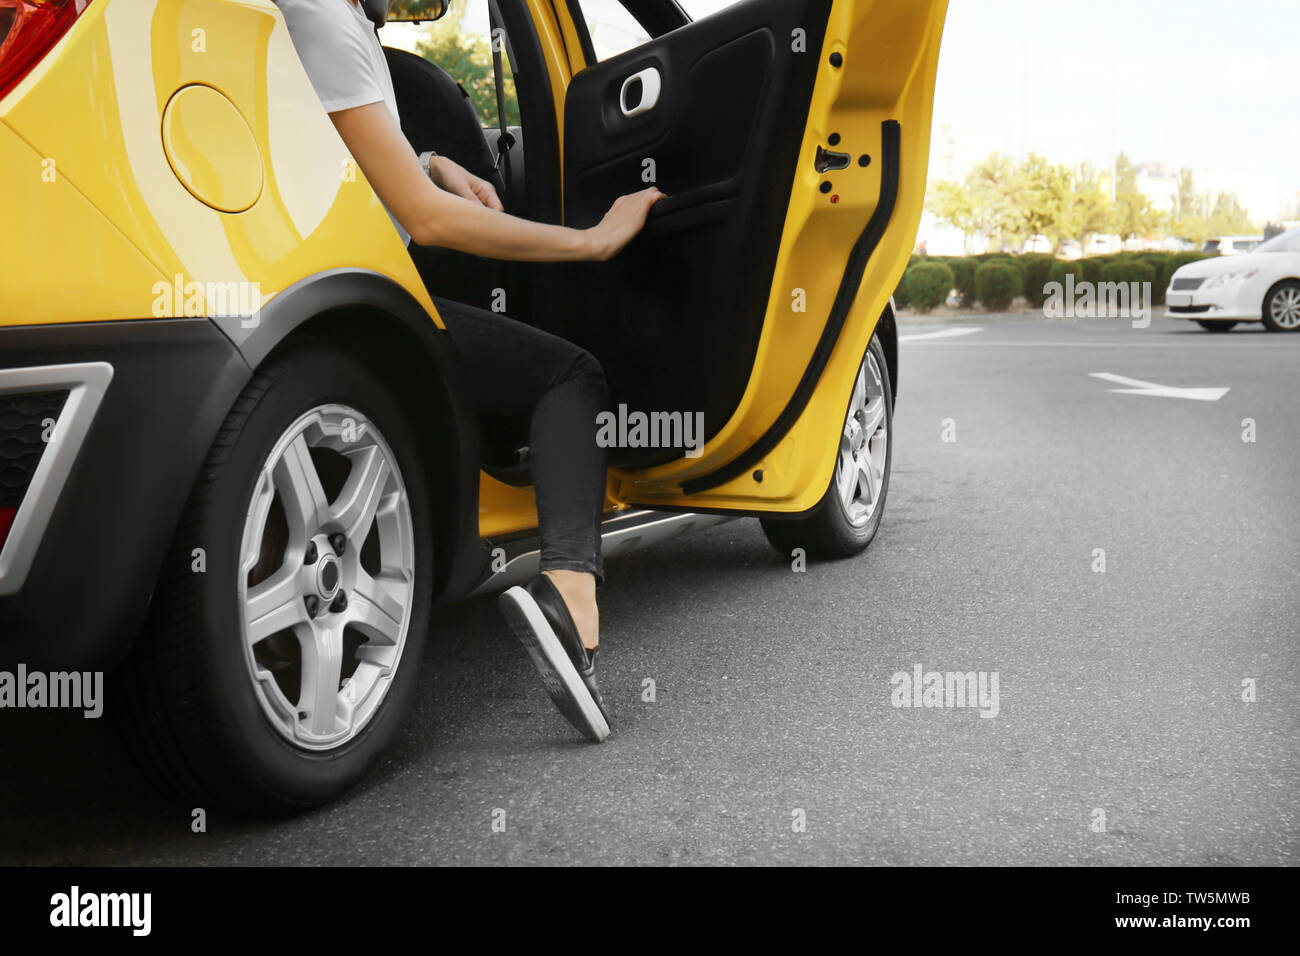 Young woman in taxi car - Stock Image